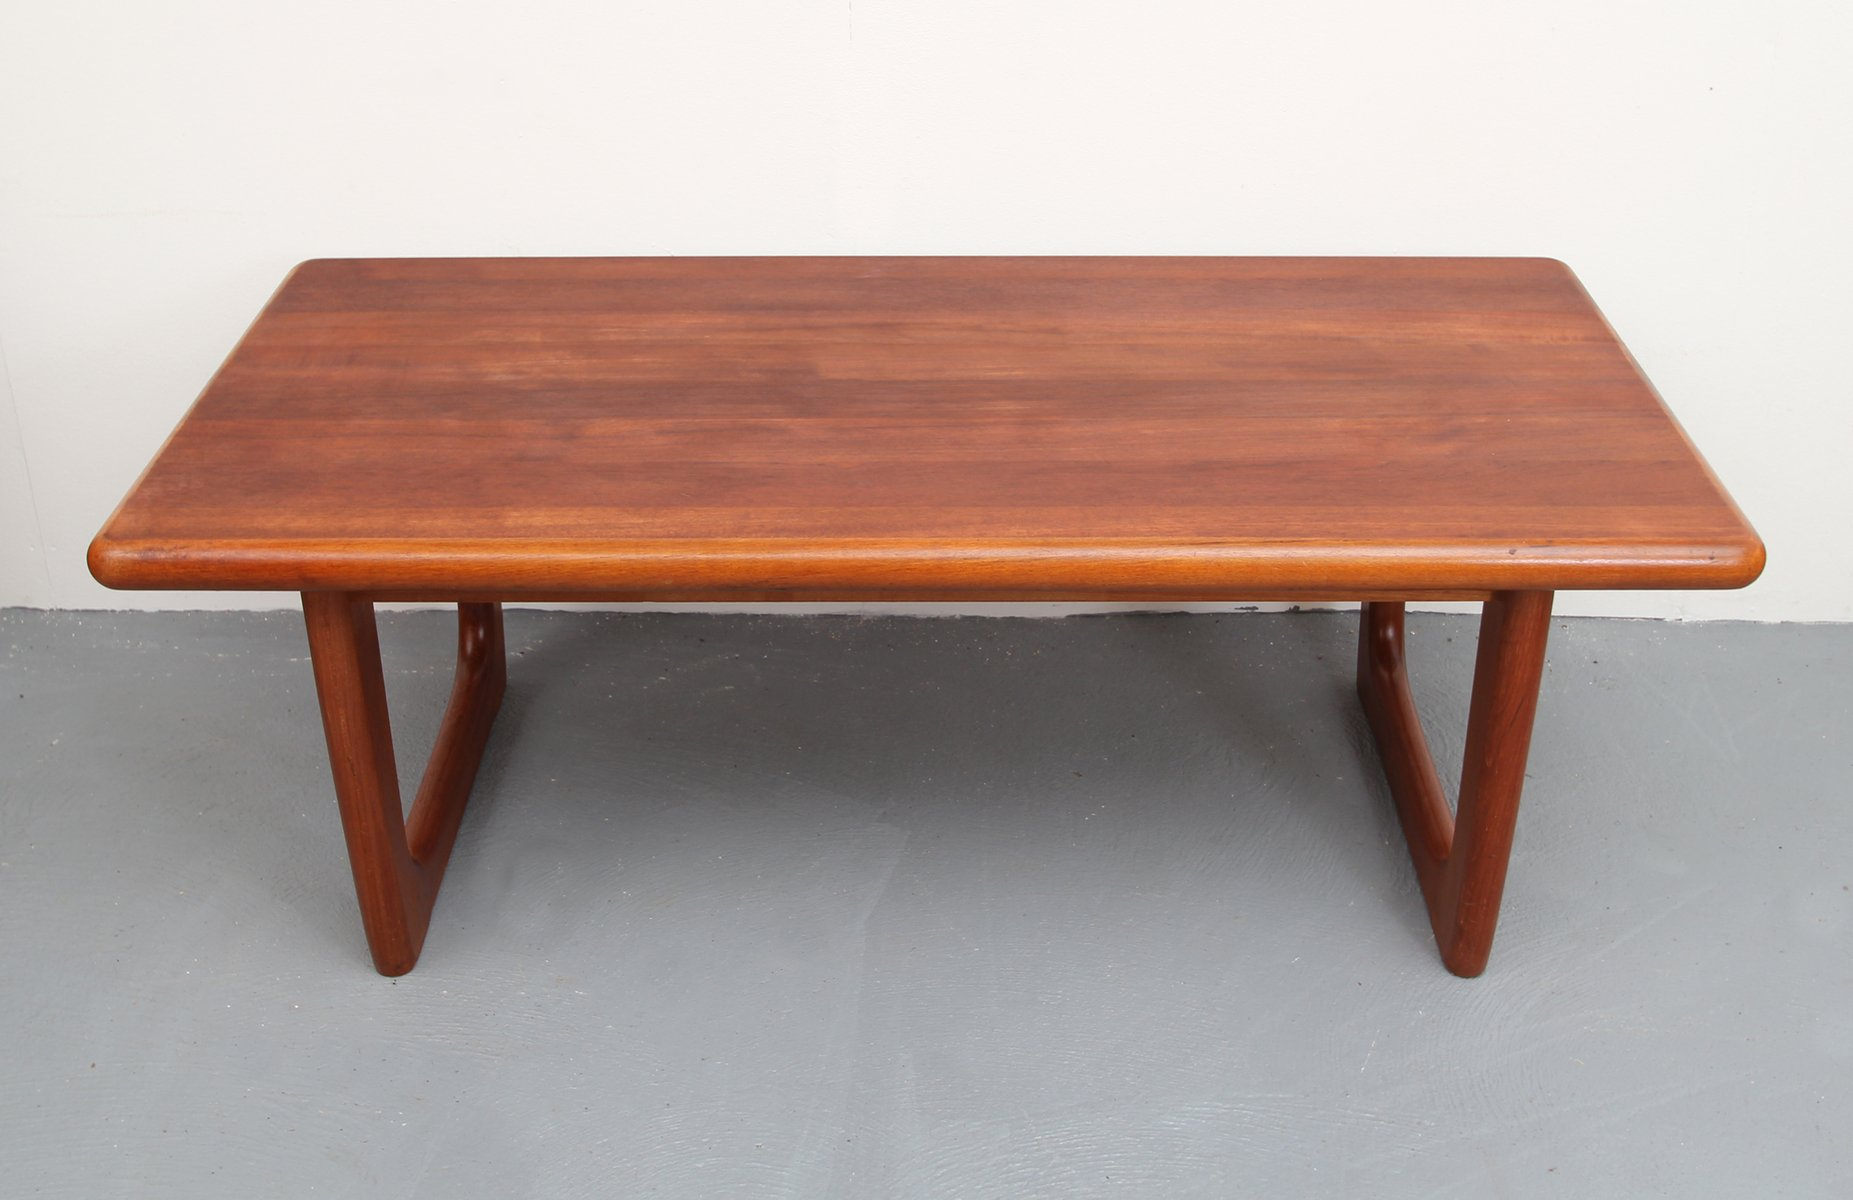 Captivating Danish Teak Coffee Table From Niels Bach, 1960s